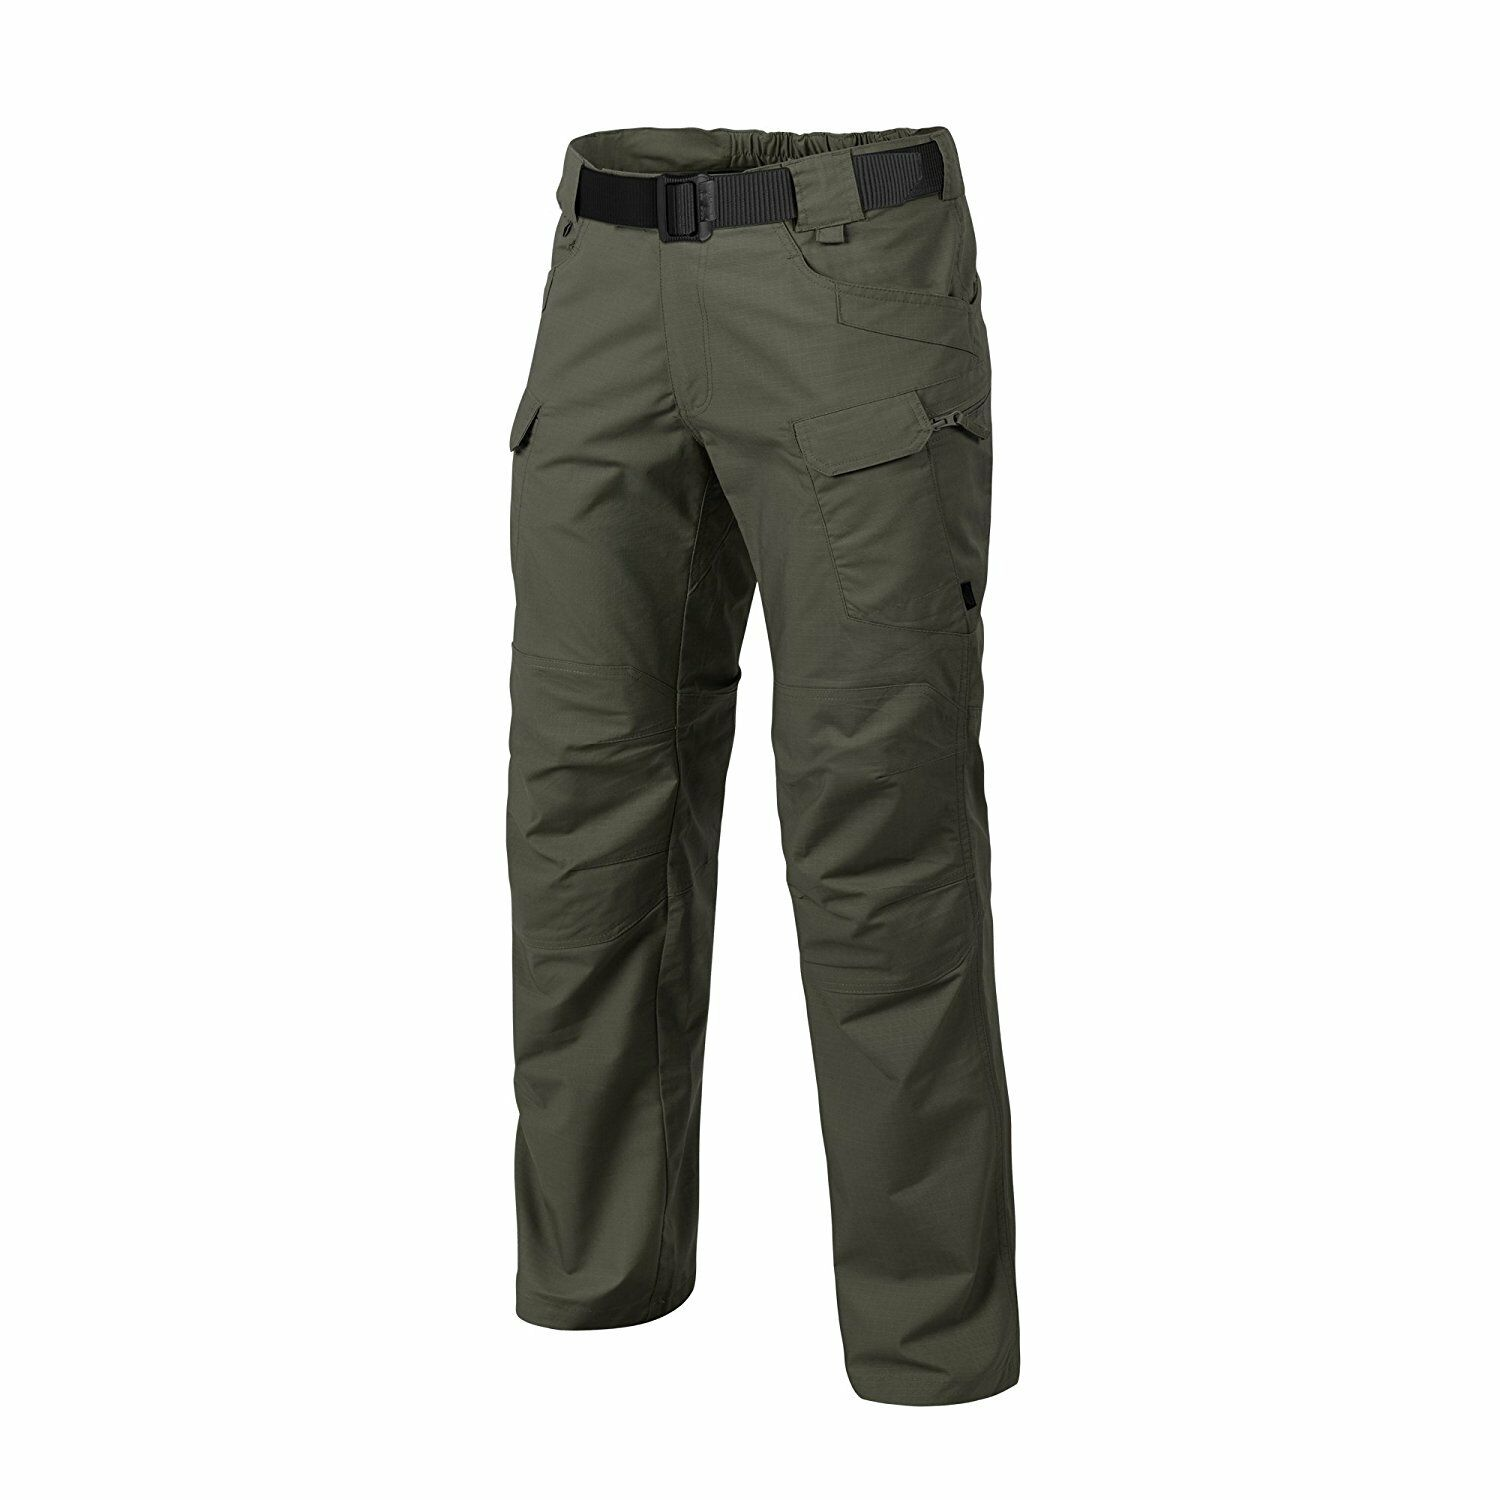 Helicon Tex UTP Urban Tactical Pants